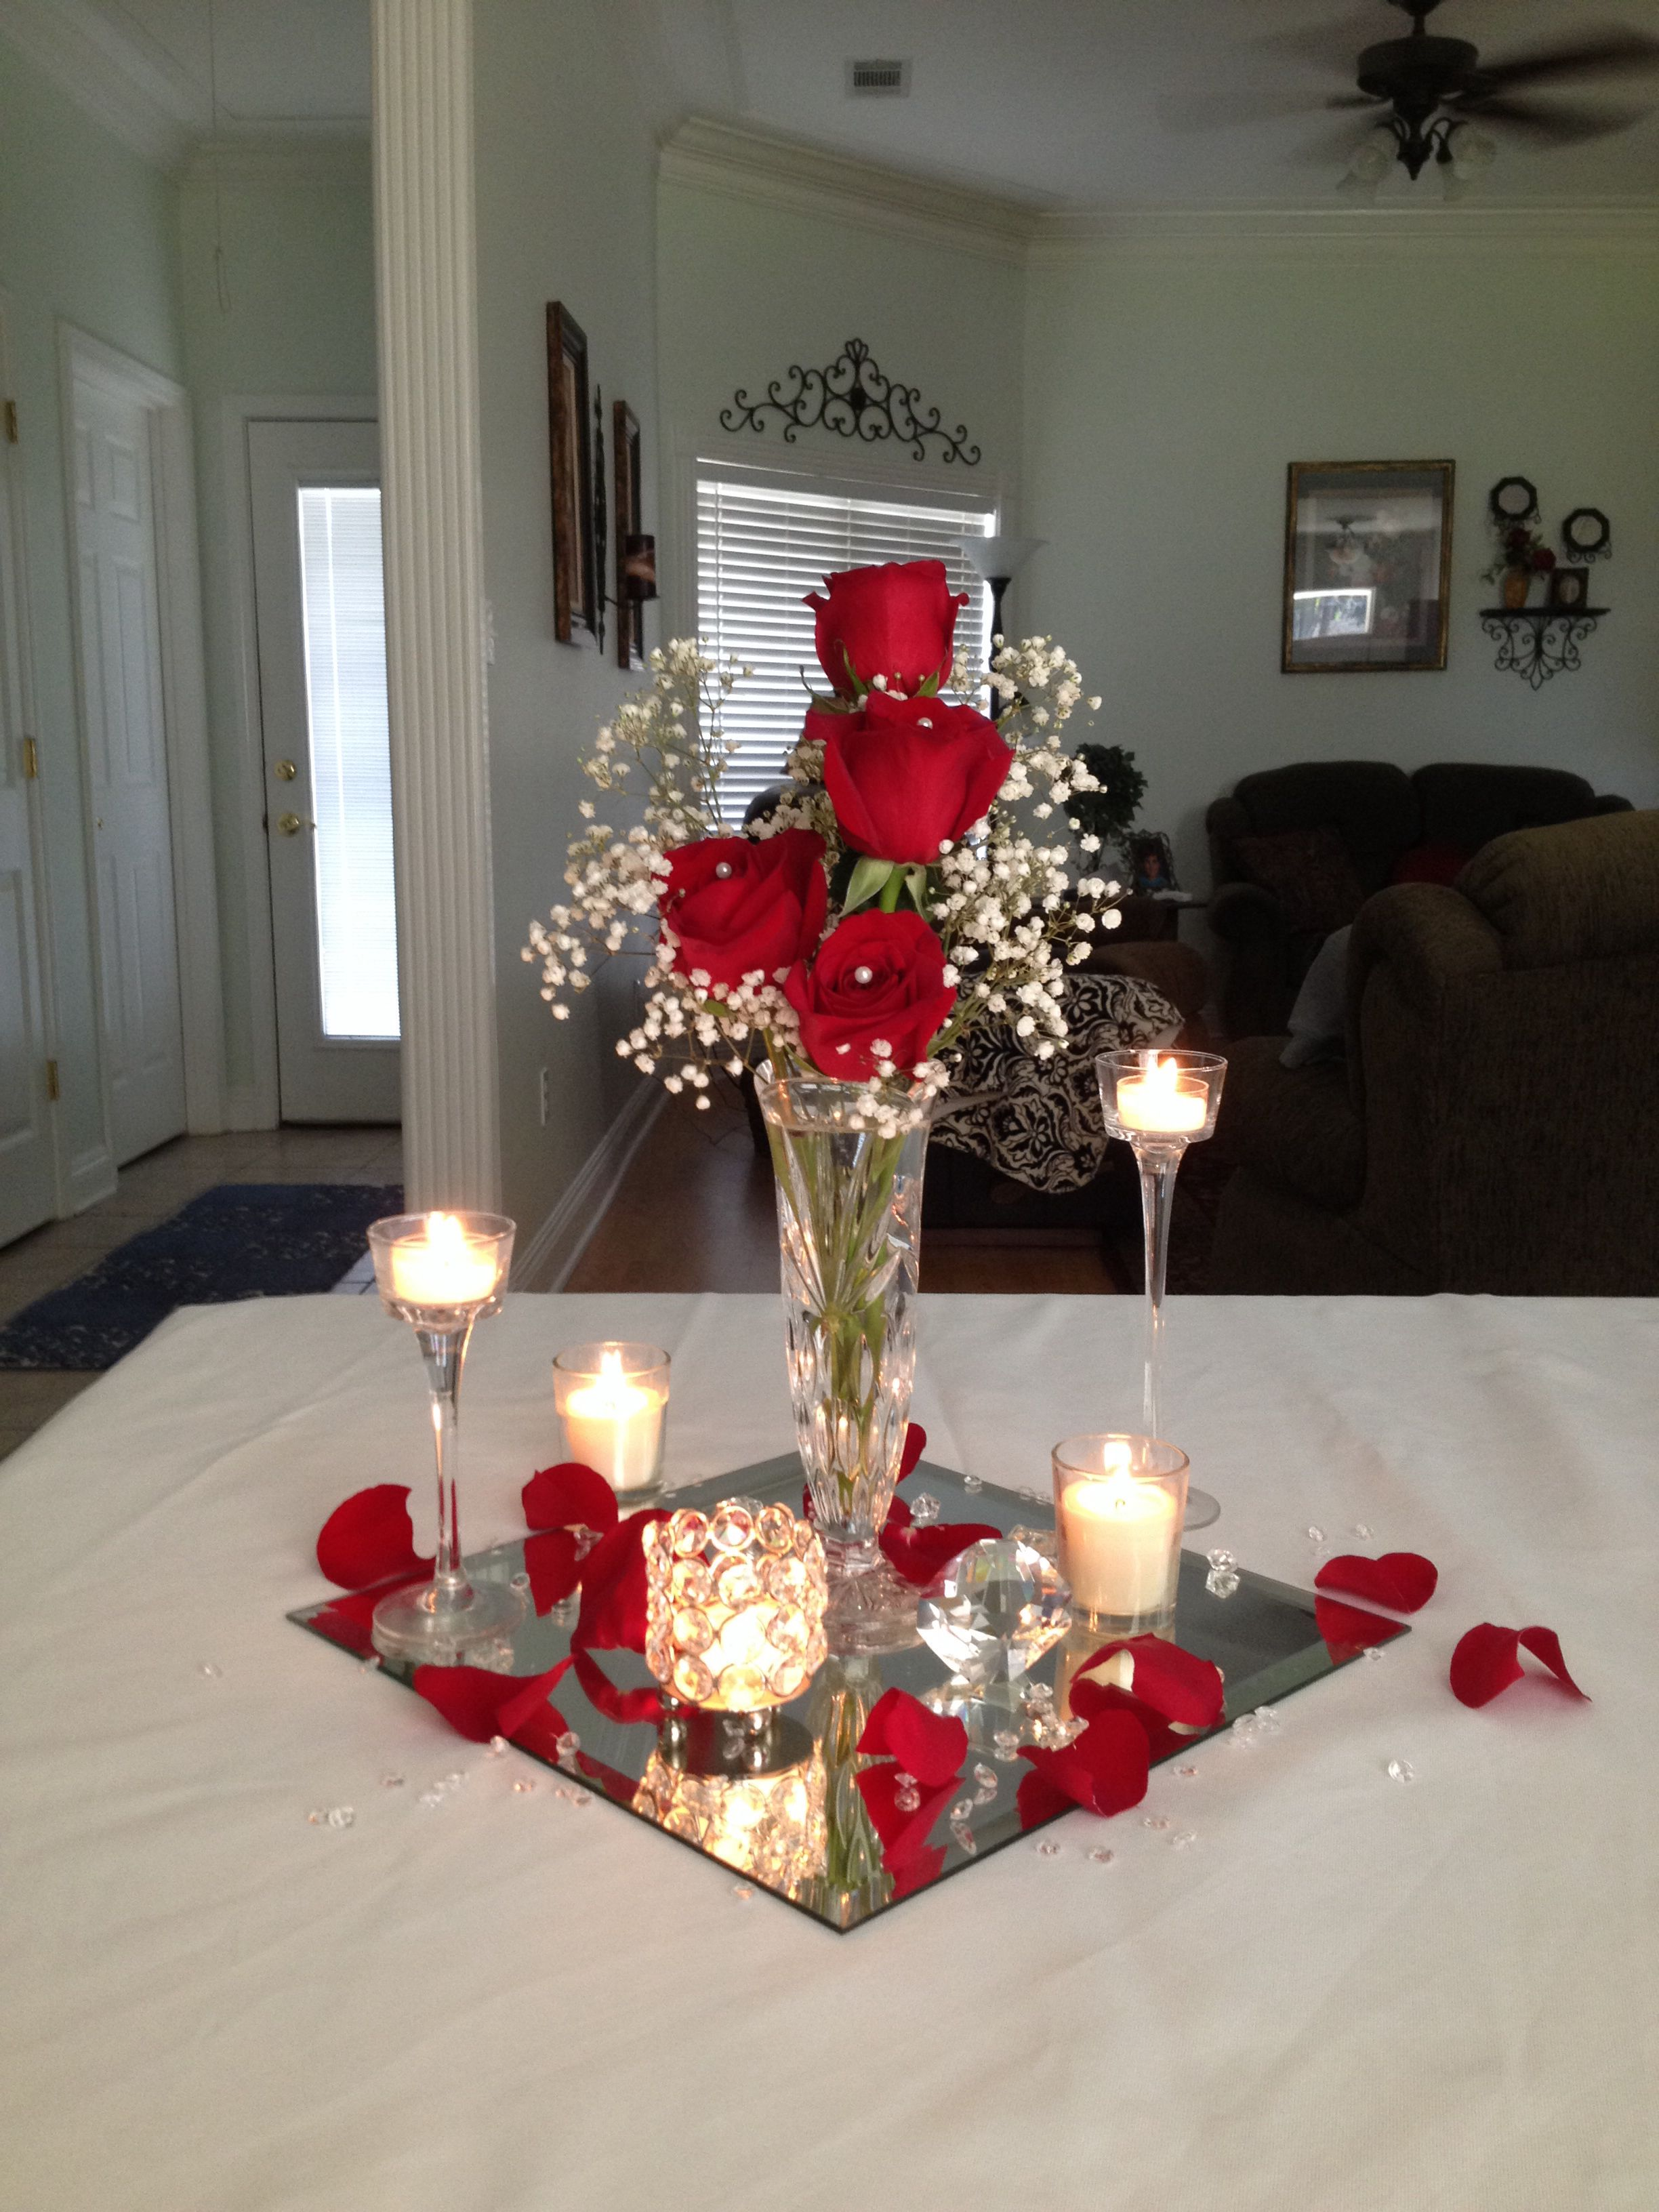 Wedding centerpiece on a budget by Vera | Wedding centerpieces ...